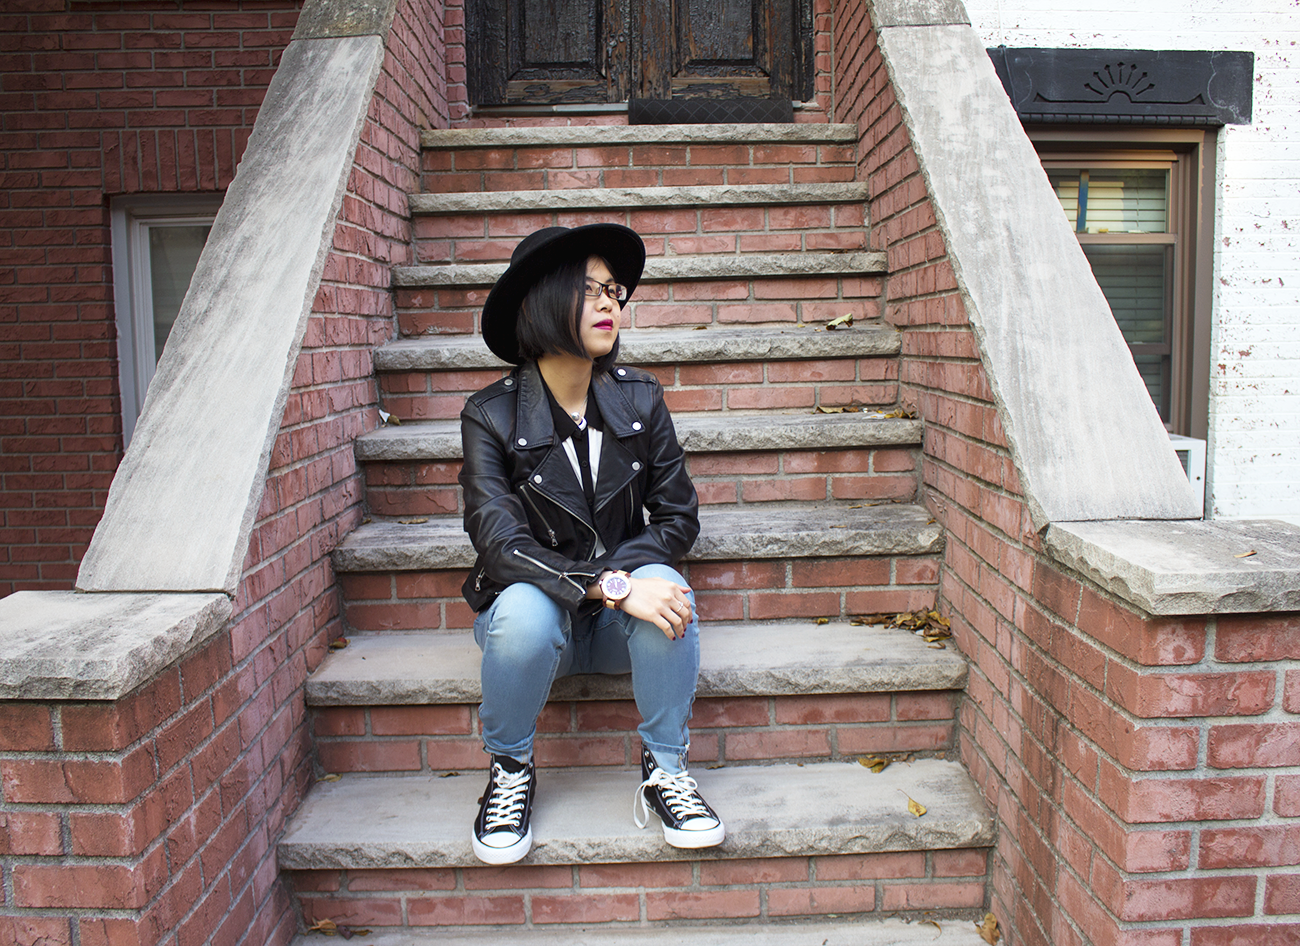 Maplewood & sandalwood JORD watch styled with a cool fall outfit featuring ZARA leather jacket, jeans, hat, and Converses